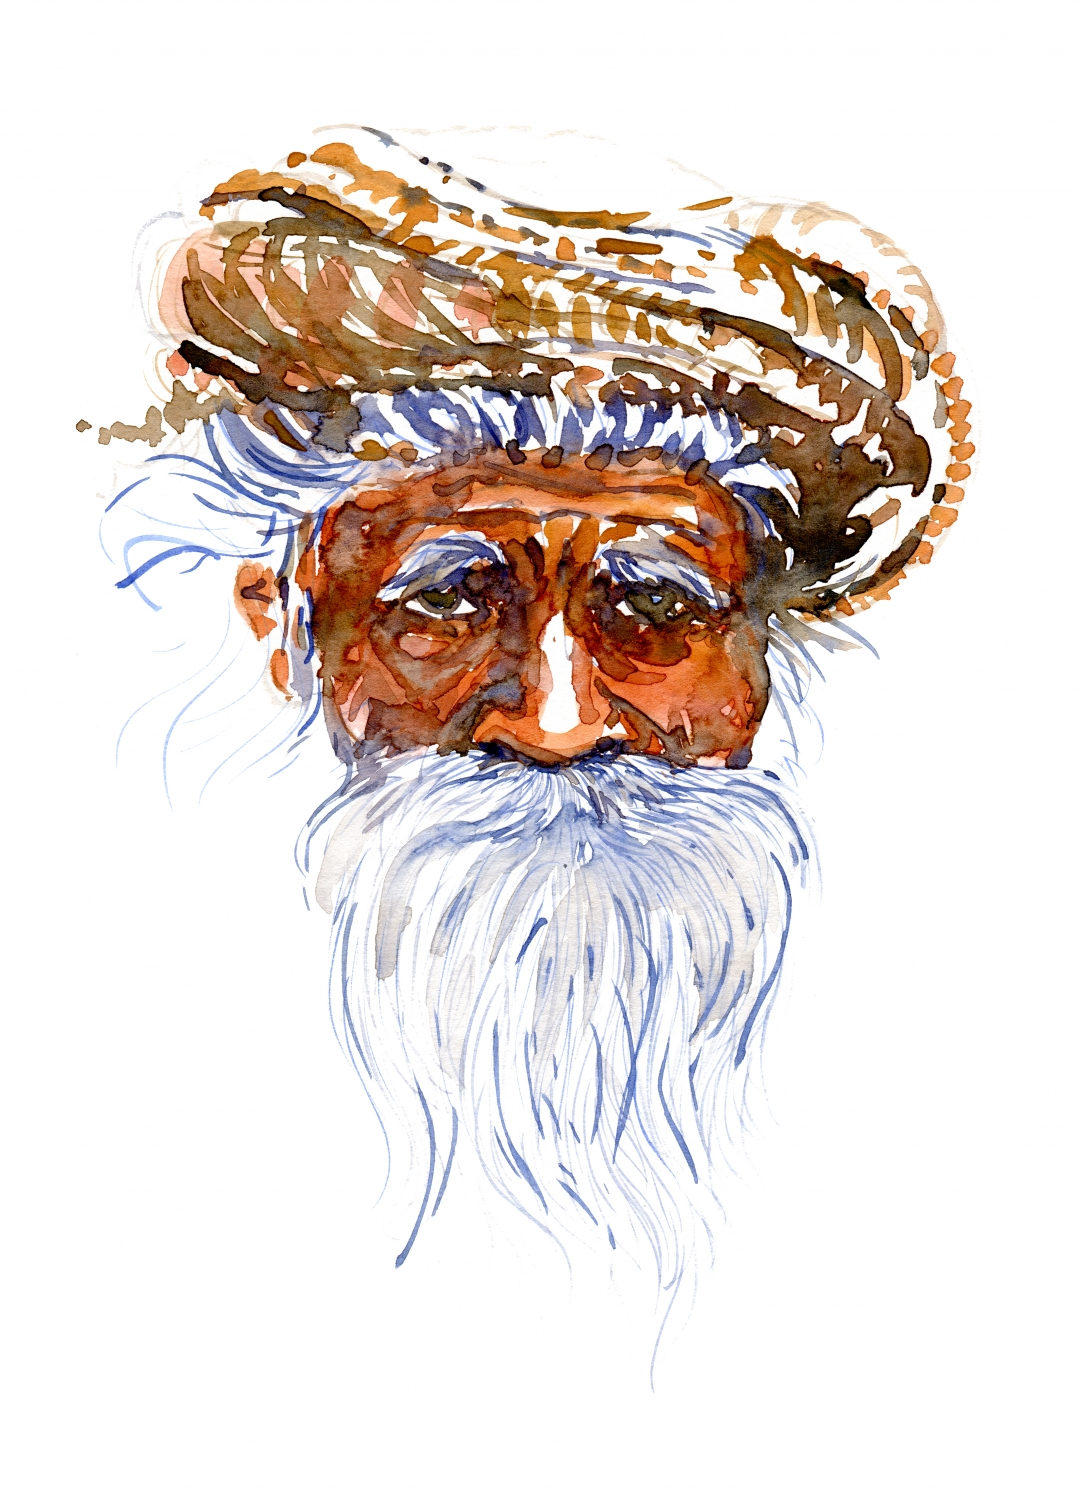 watercolor portrait of an old man